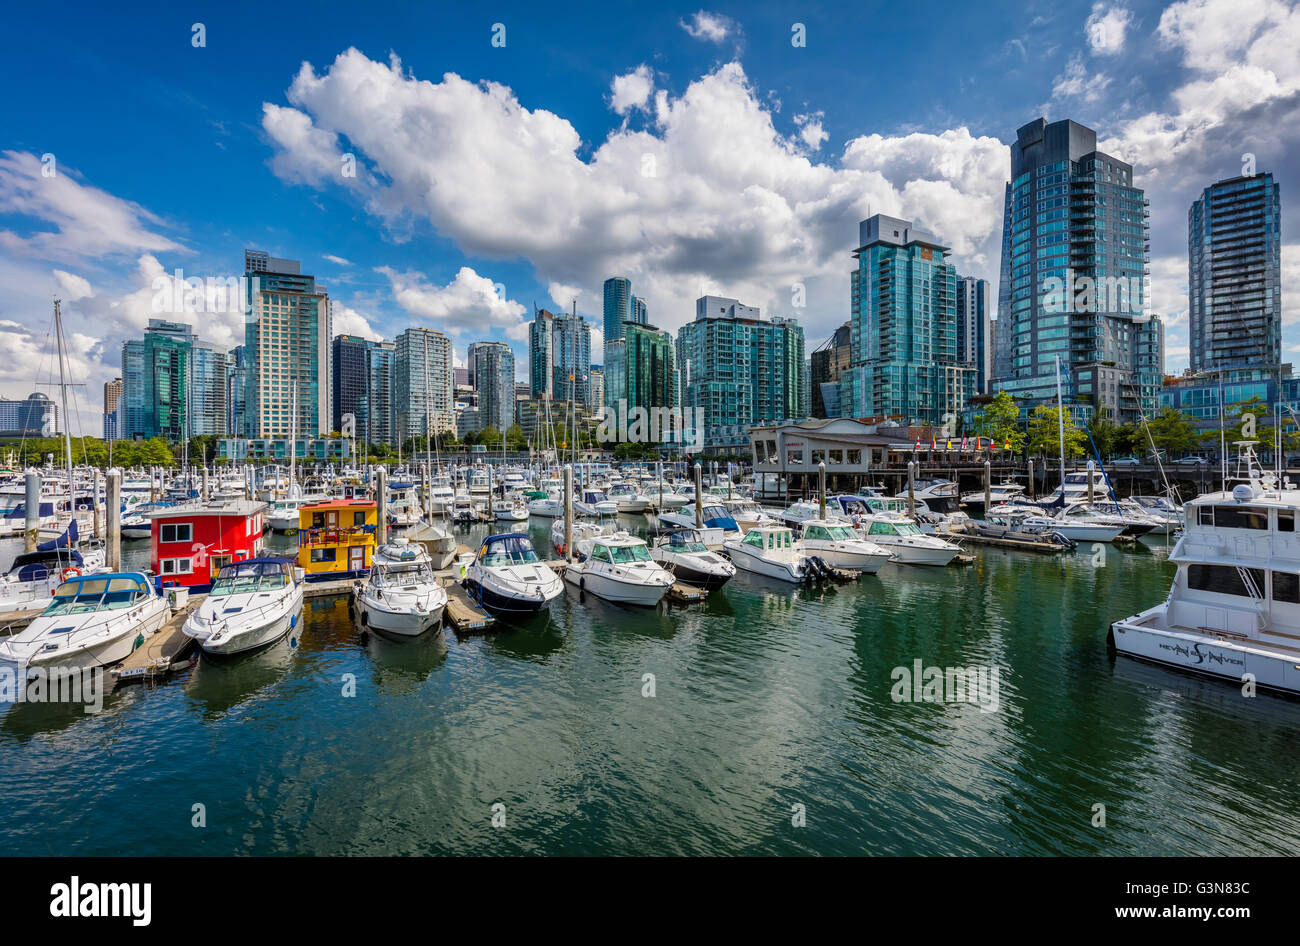 Vancouver is the most populous city in the Canadian province of British Columbia. - Stock Image